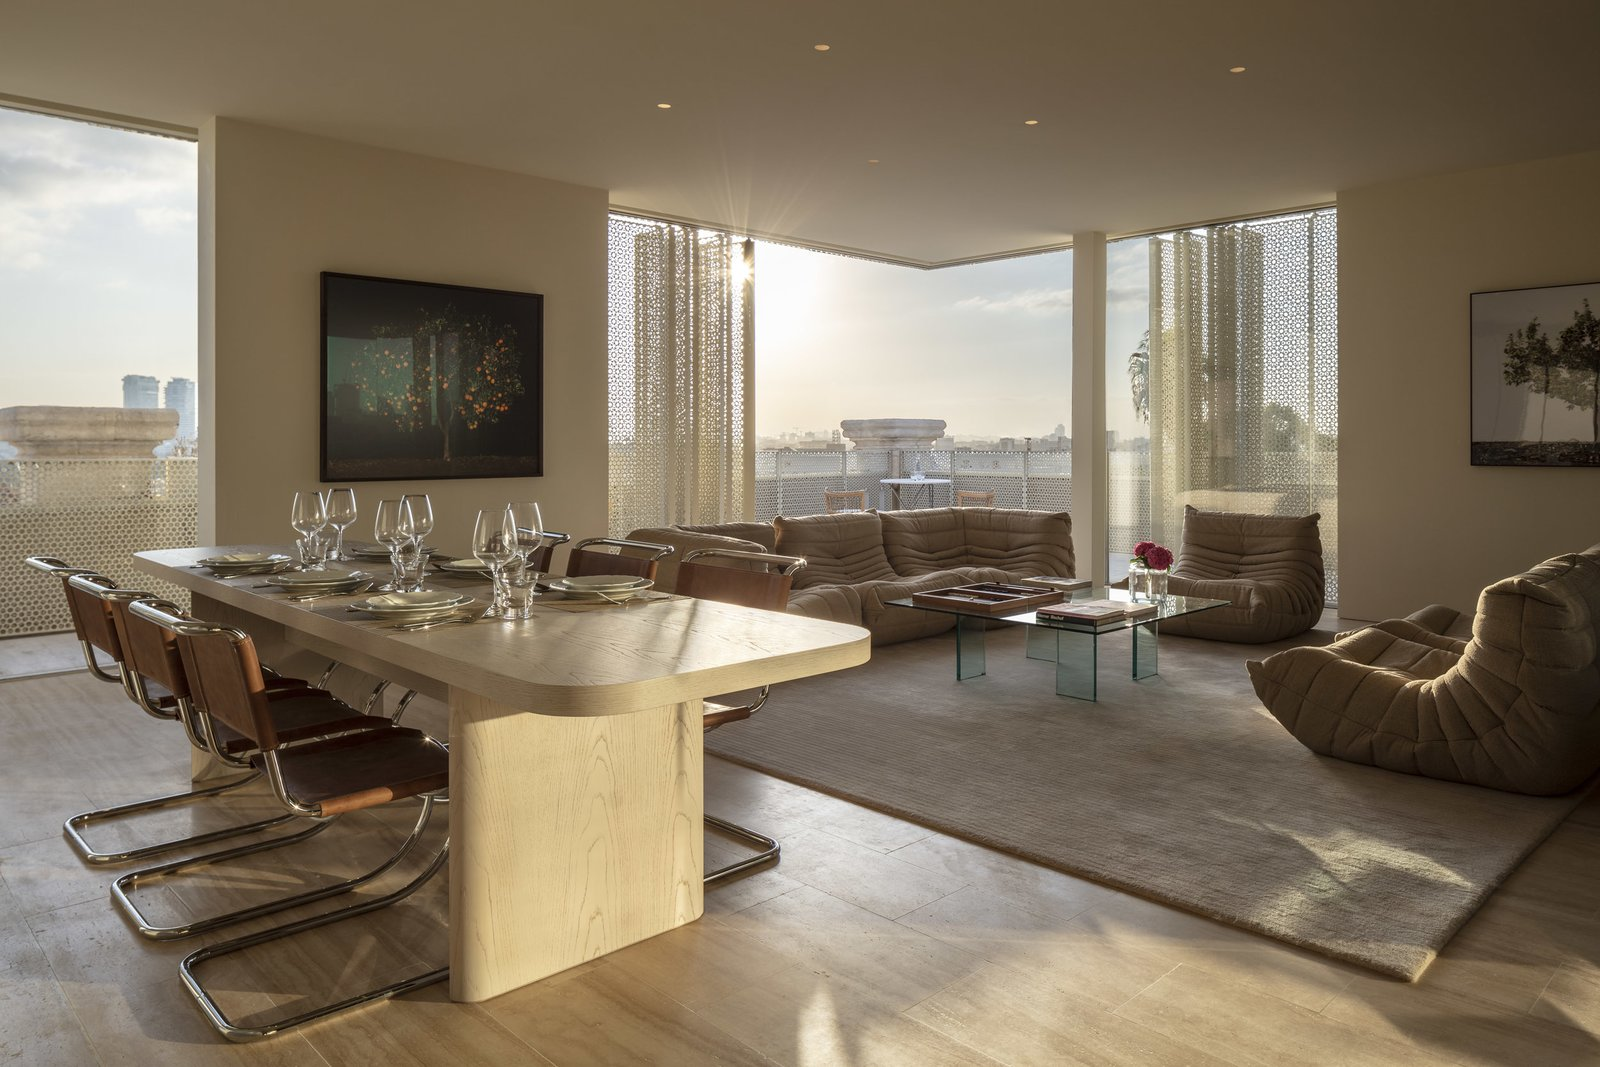 Living Room, Chair, Table, Coffee Tables, Sofa, Rug Floor, and Recessed Lighting The stylish Presidential suite features a sofa and chairs from Lignet Roset.  Jaffa Hotel from John Pawson Turns an Old Hospital and Convent Into a Luxe Hotel in Israel